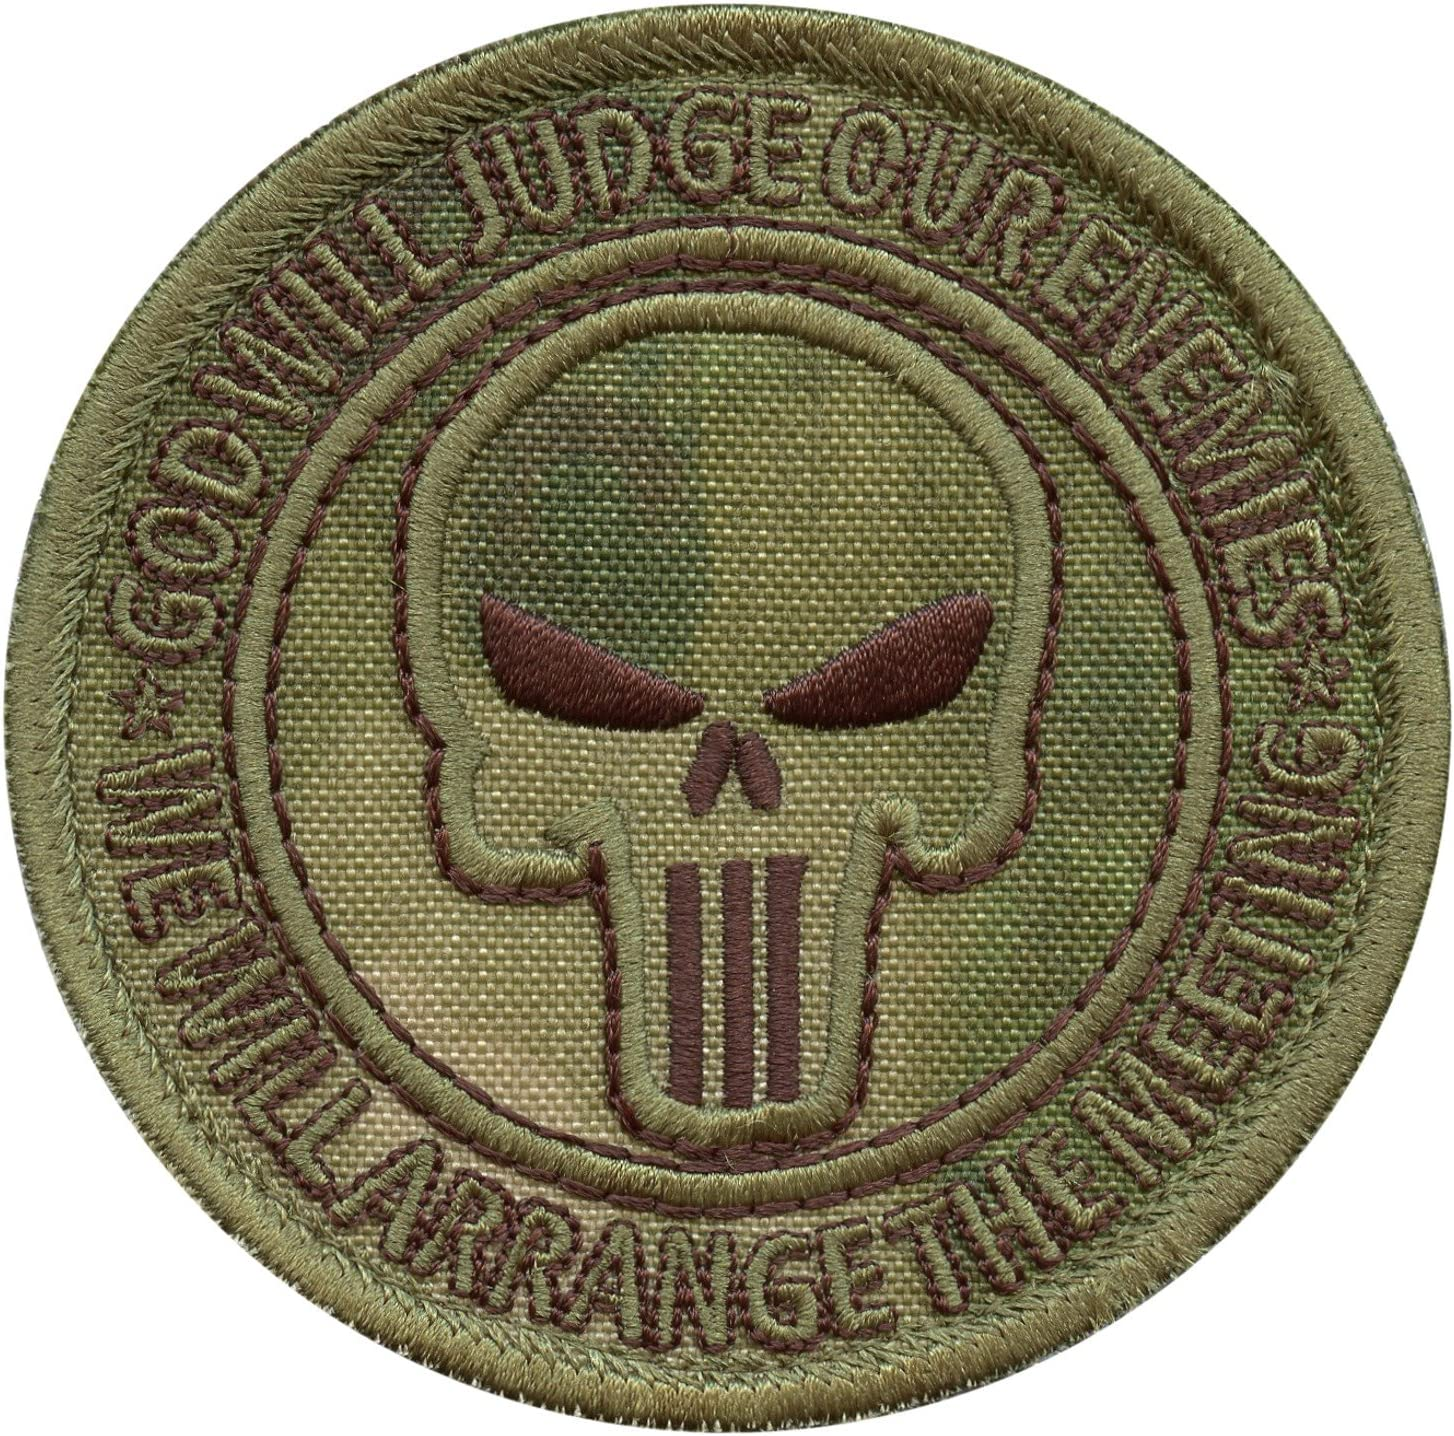 God Will Judge Our Enemies ACU Subdued US Navy Seals DEVGRU JSOC Morale Sew Iron on Patch